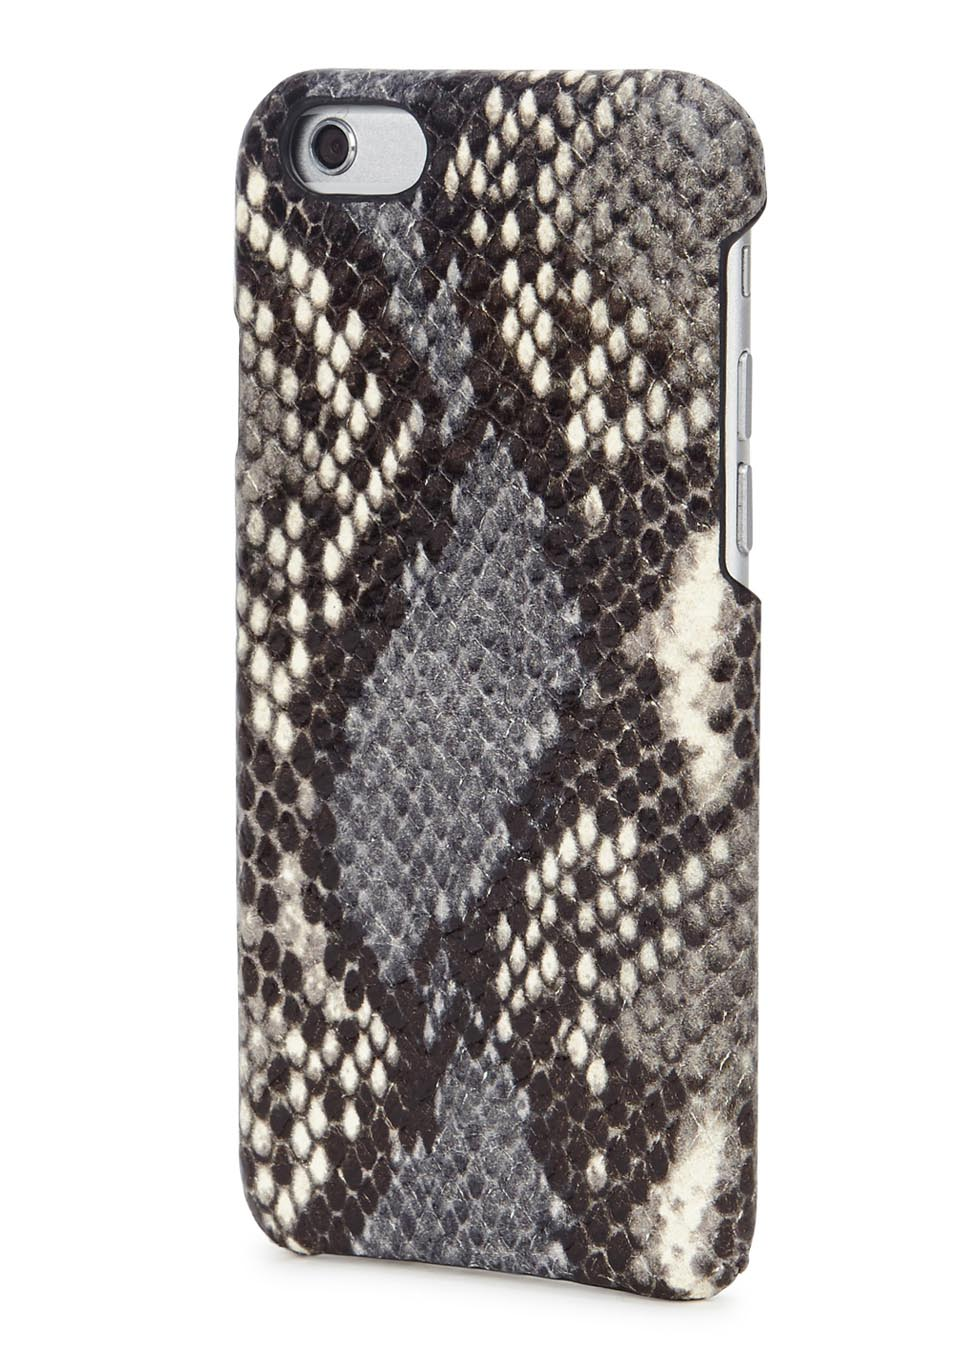 Python-effect leather iPhone 6/6S case - The Case Factory